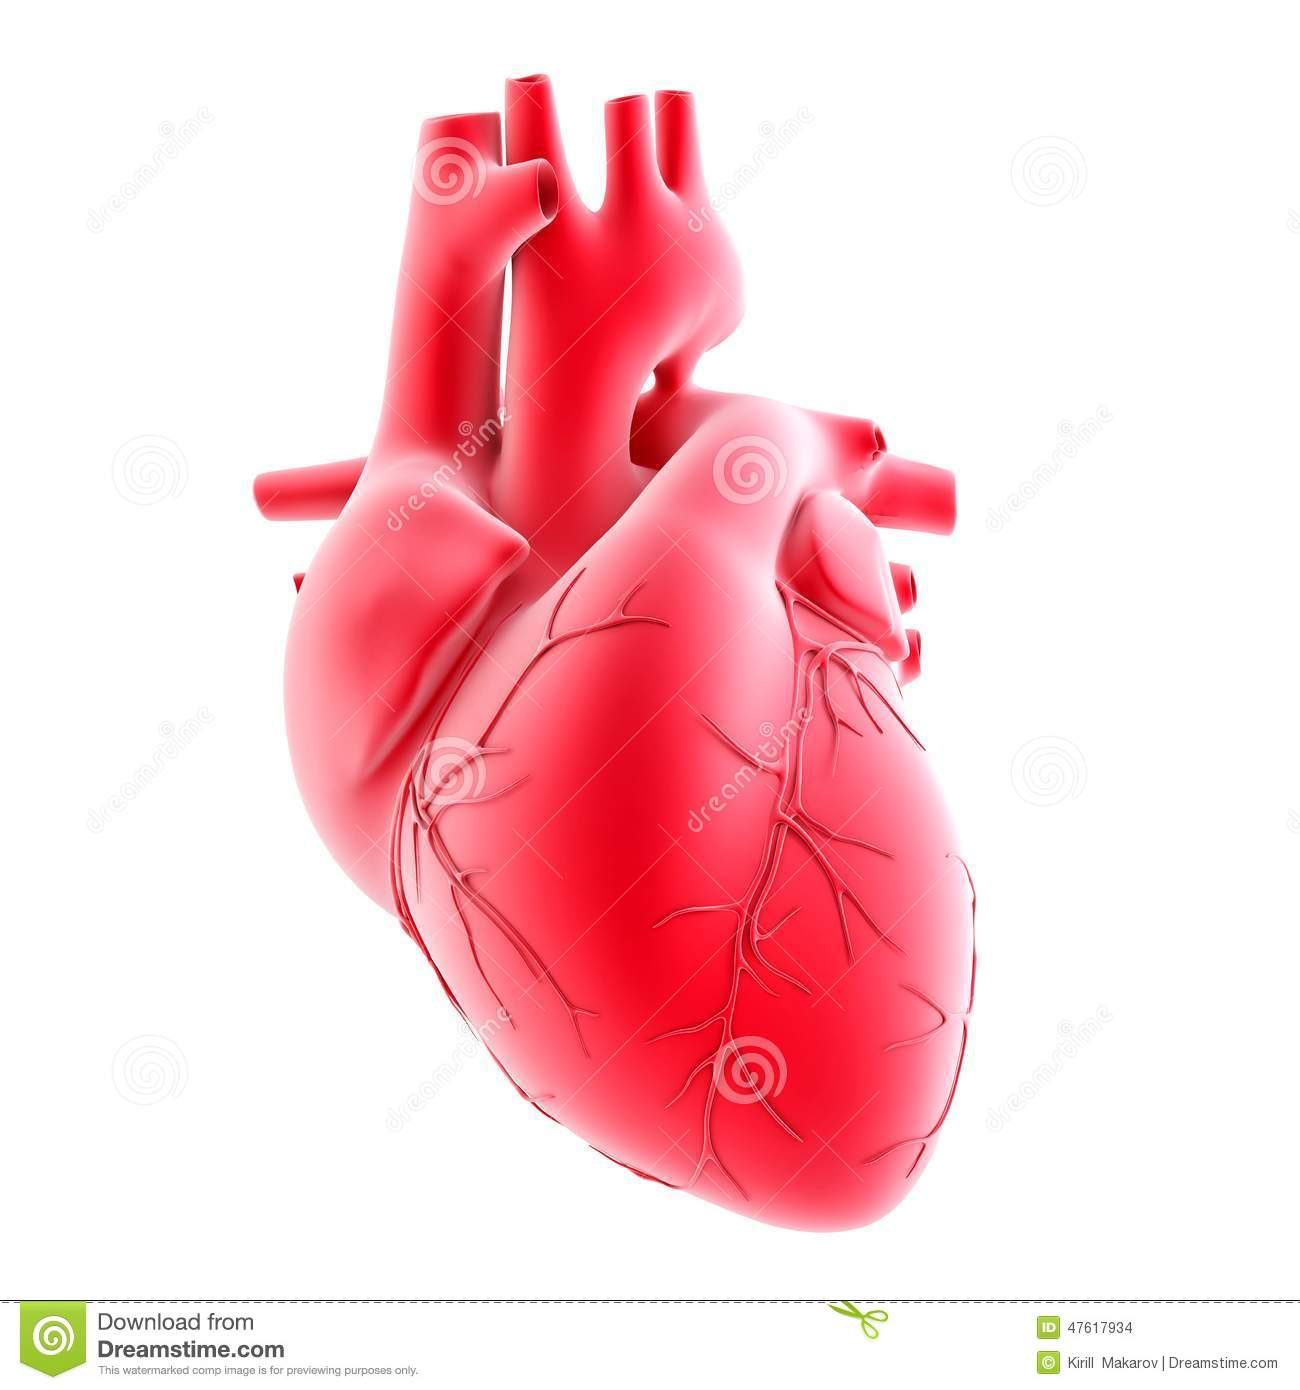 Anatomie Hart Human Heart 3d Illustration Isolated Contains Clipping